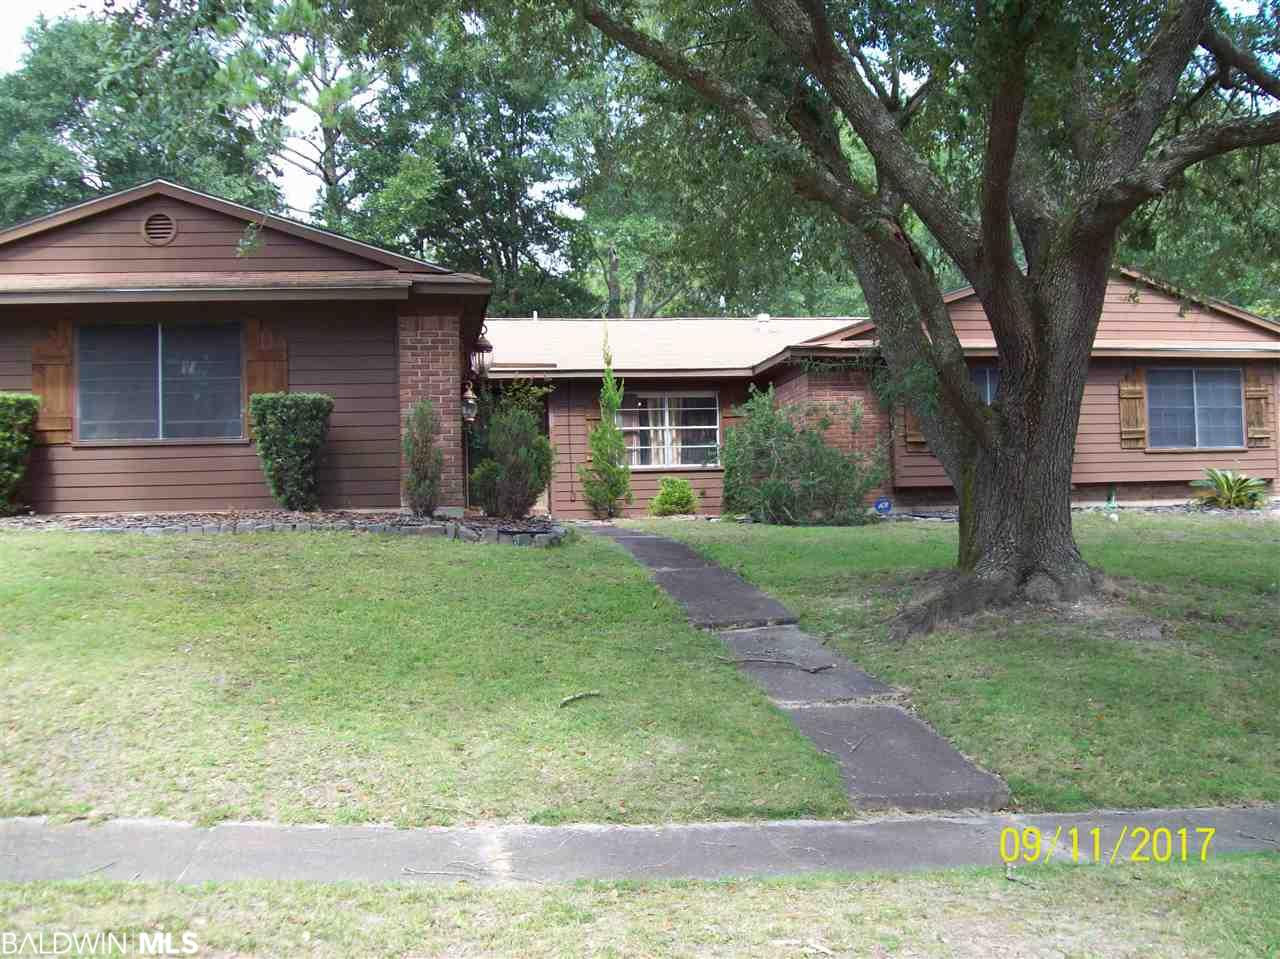 417 Dogwood Dr, Mobile, AL 36609